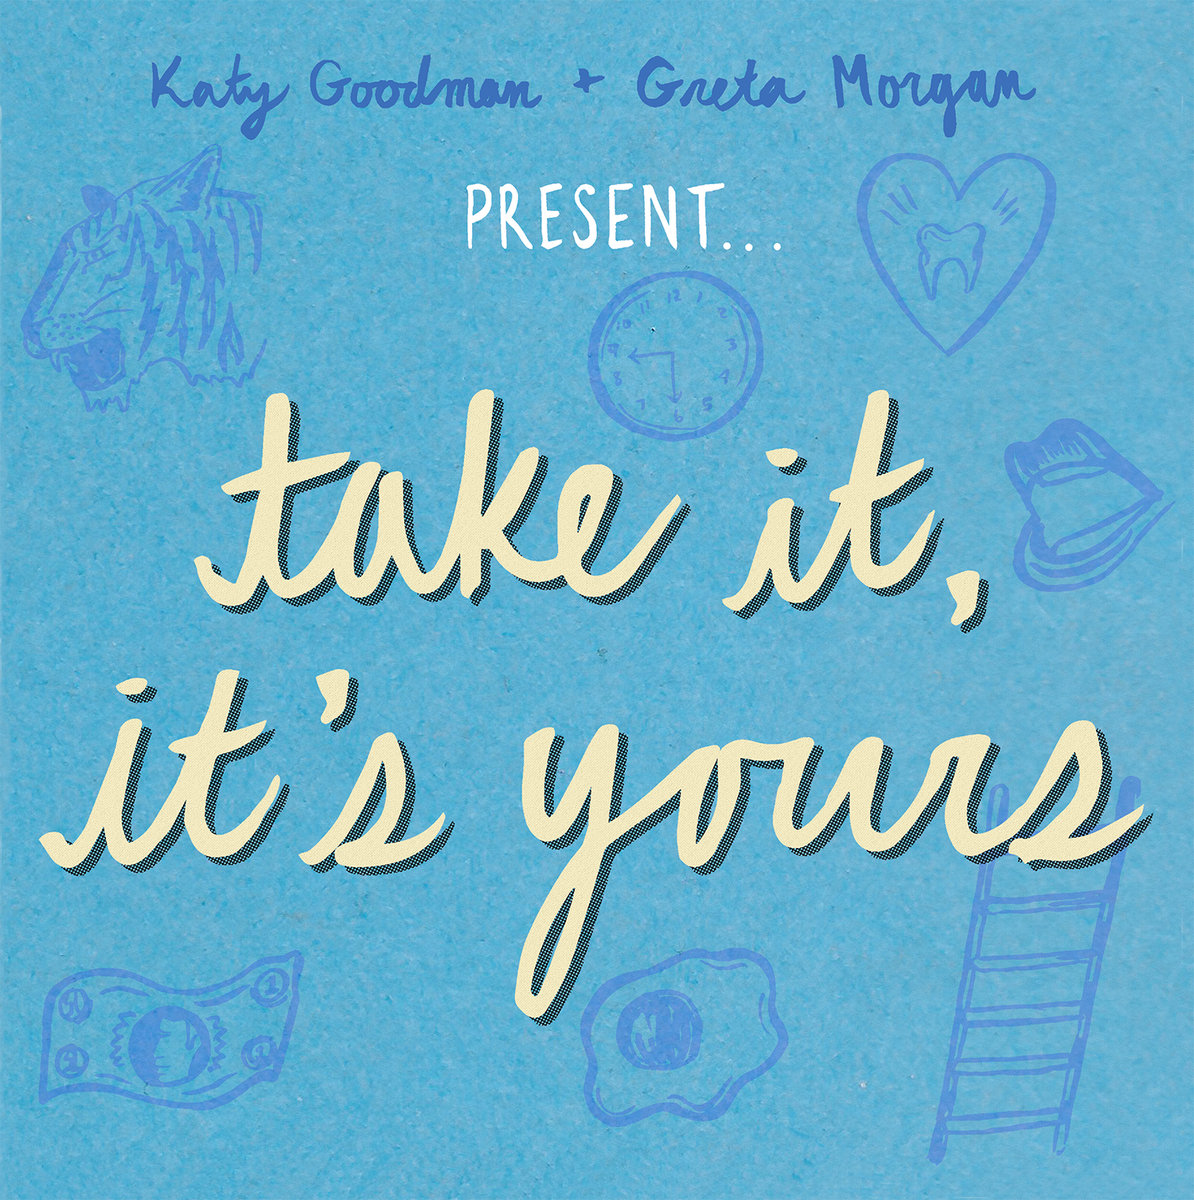 'Take It, It's Yours' by Katy Goodman and Greta Morgan, album review by Gregory Adams.